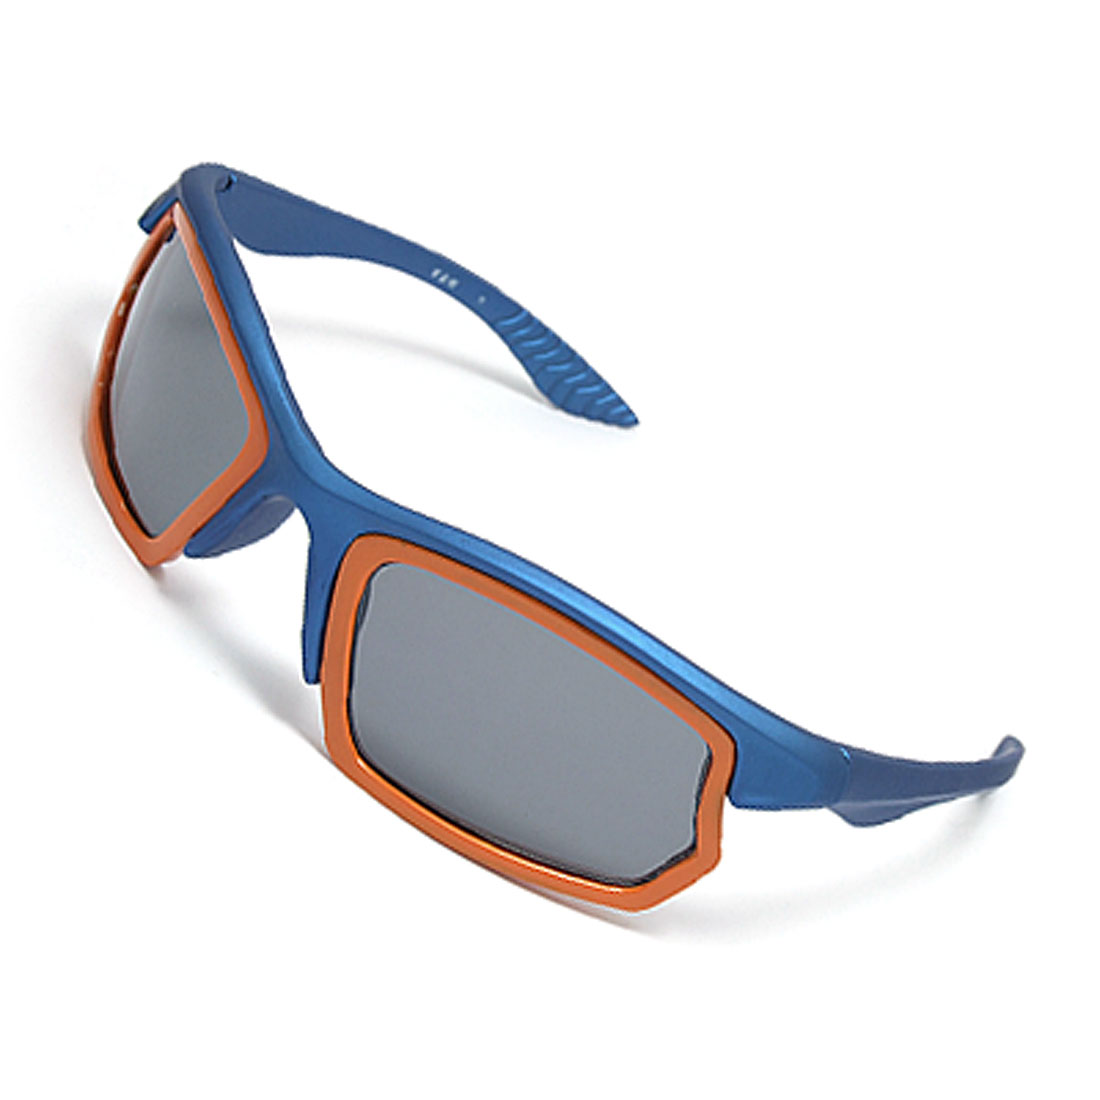 Blue Rubberized Plastic Frame Arms Cool Unisex Sunglasses